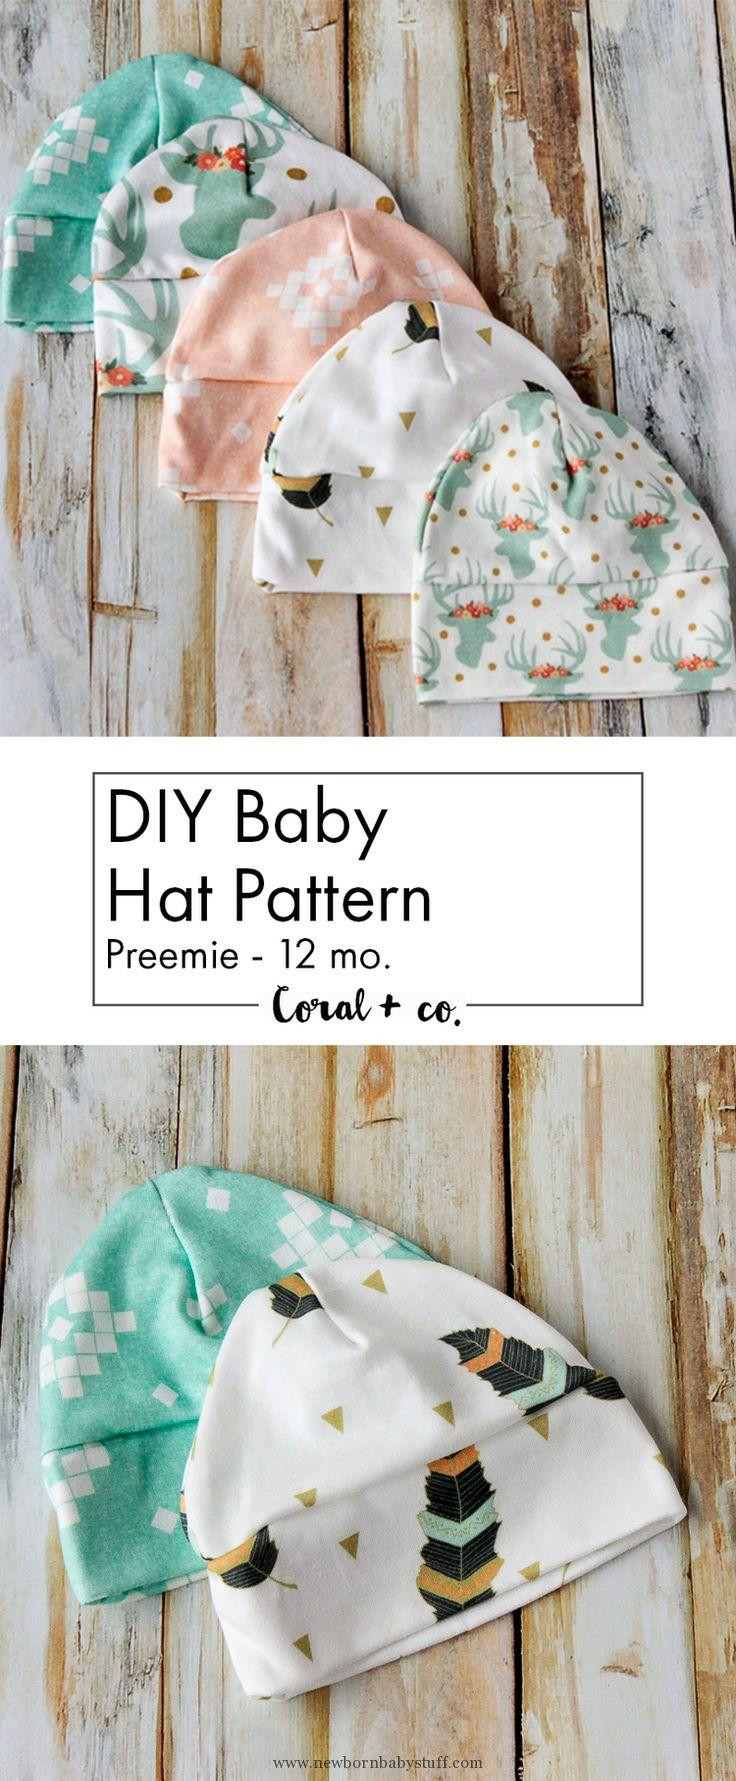 Best ideas about DIY Baby Hats . Save or Pin Crochet Baby Hats DIY Baby Hat Sewing Pattern and Tutorial Now.